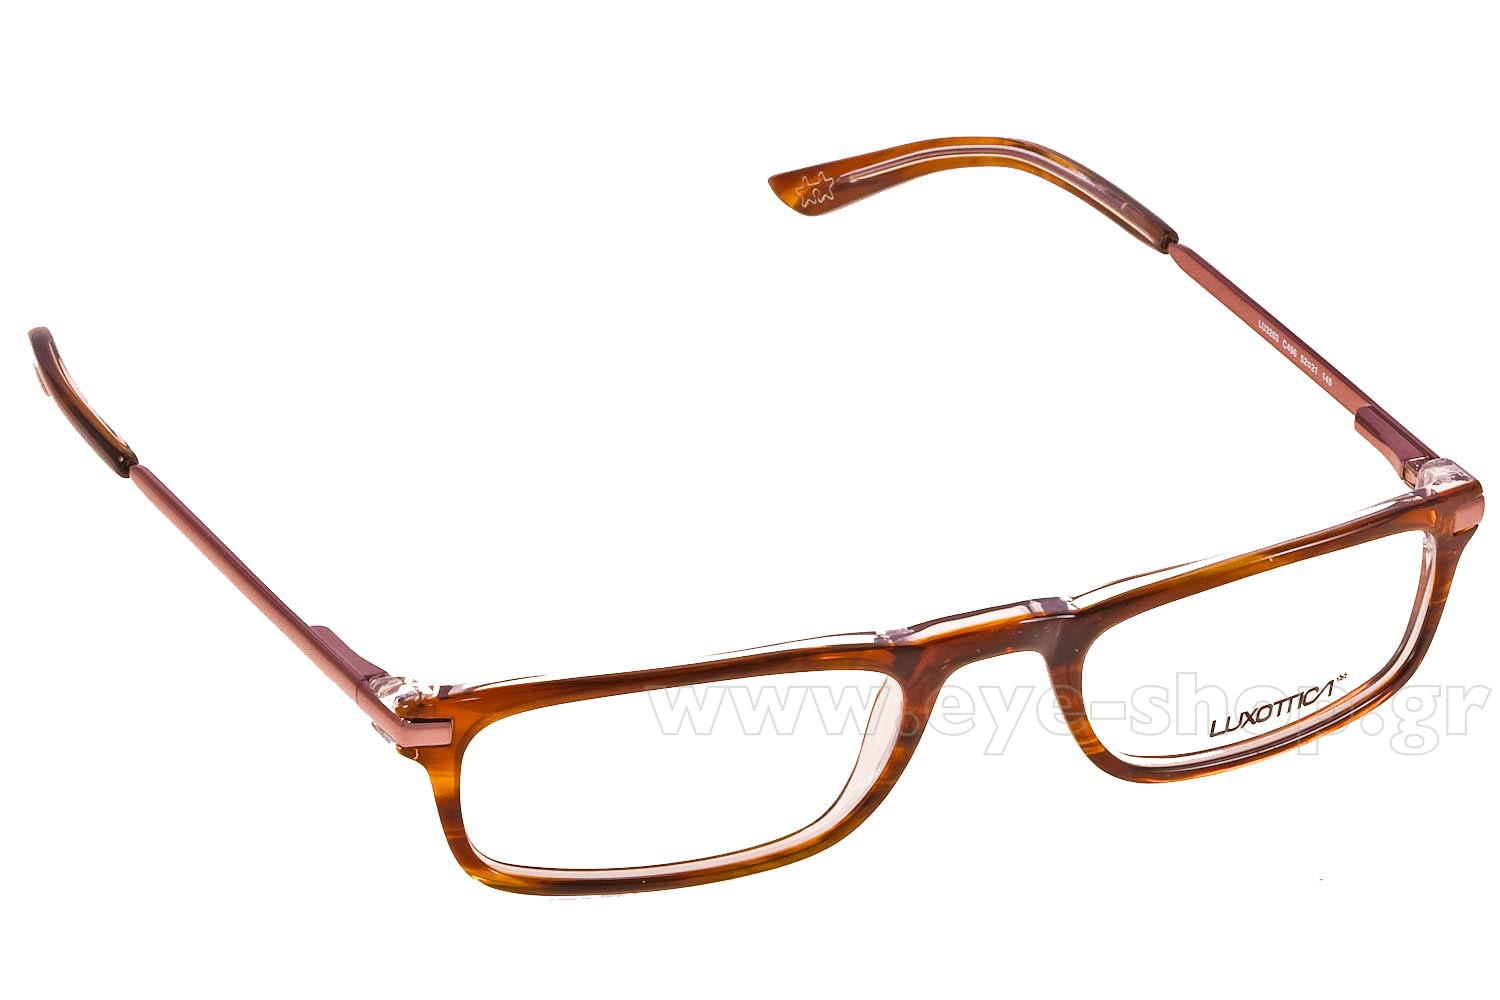 Eyeglass Frames Not Made By Luxottica : EYEWEAR LUXOTTICA 3203 C496 52? Semi-Lunar 2017 ver1.